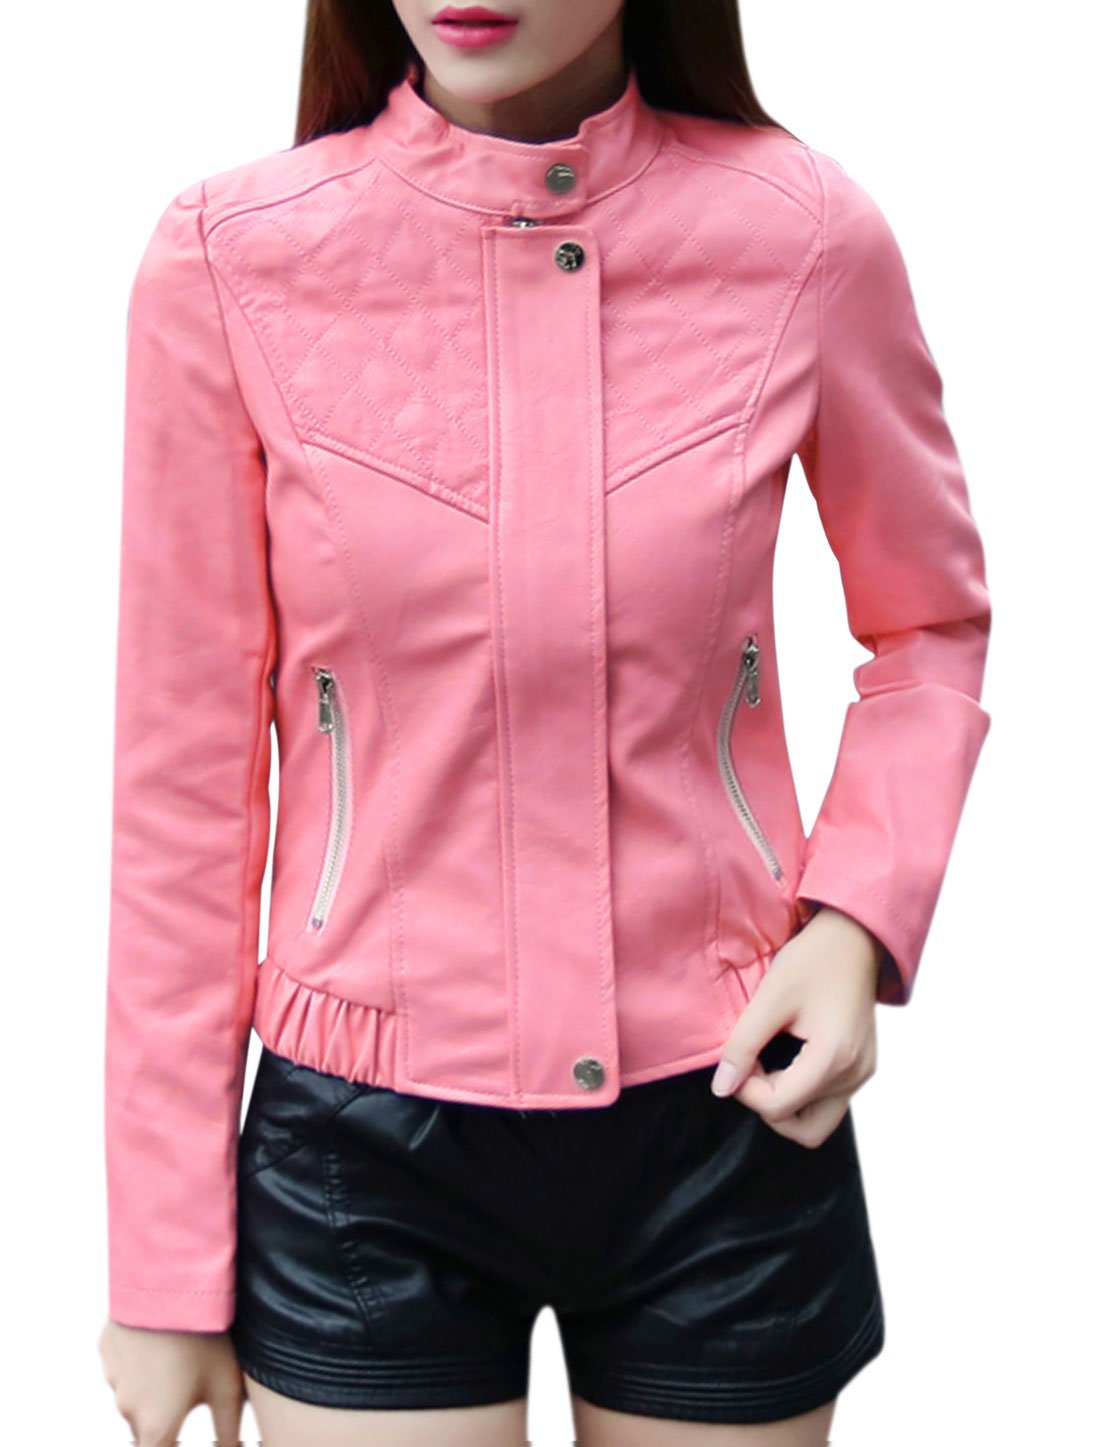 Ladies Collared Slim Fit Hidden Zipper Quilted PU Jacket Pink XS